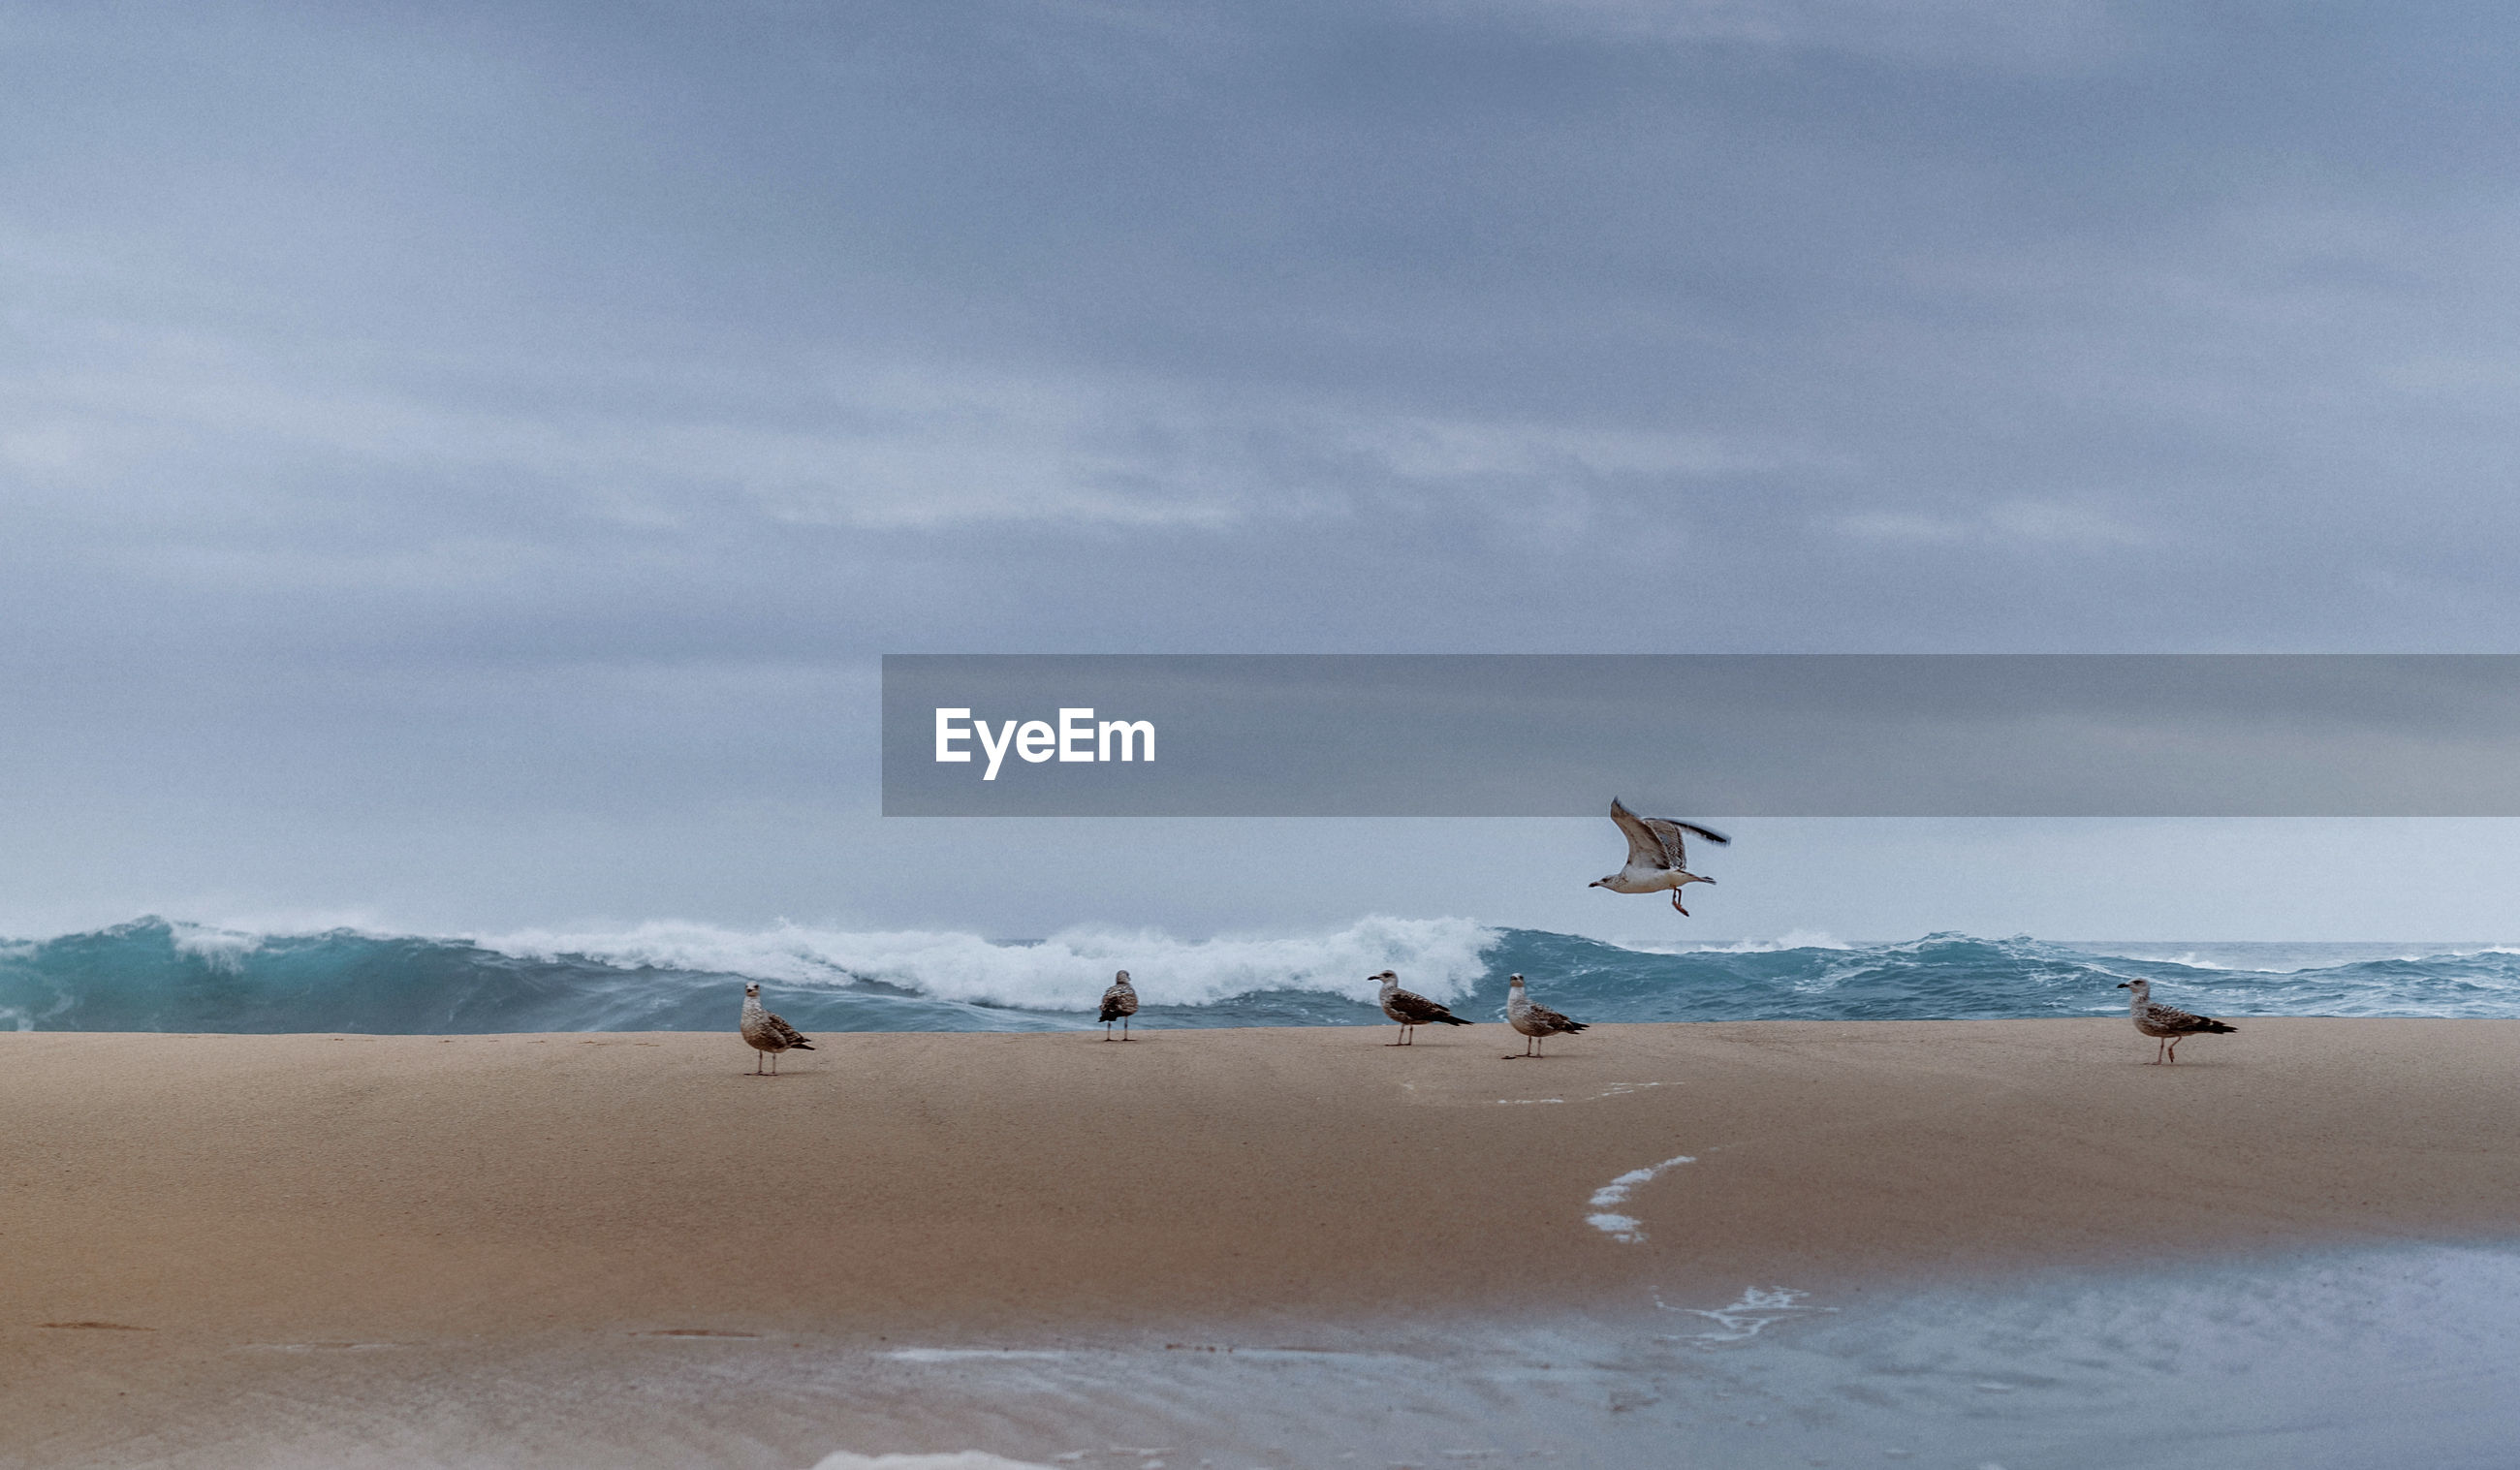 VIEW OF SEAGULLS ON SAND LAND